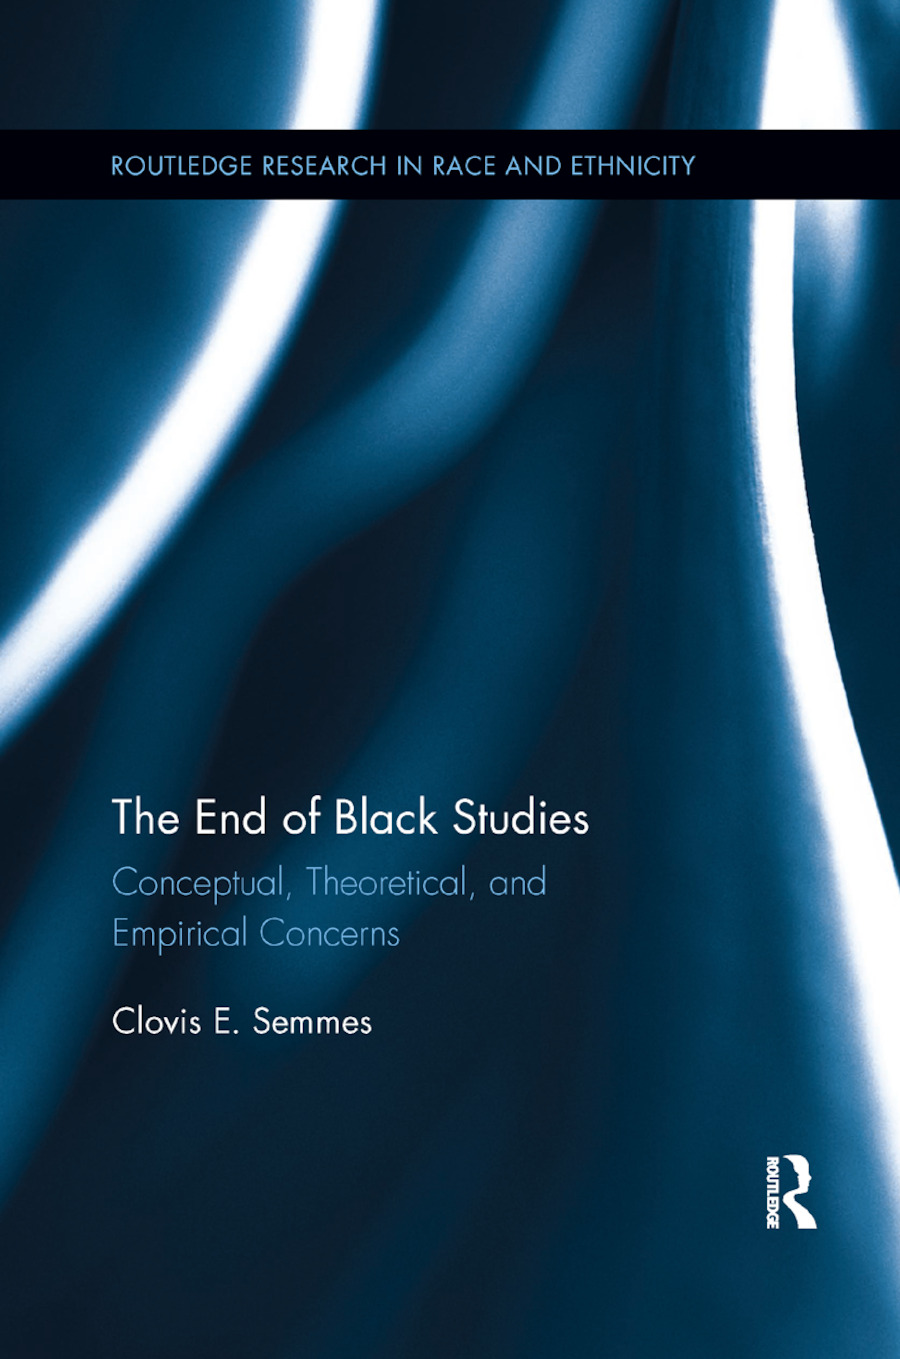 The End of Black Studies: Conceptual, Theoretical, and Empirical Concerns book cover